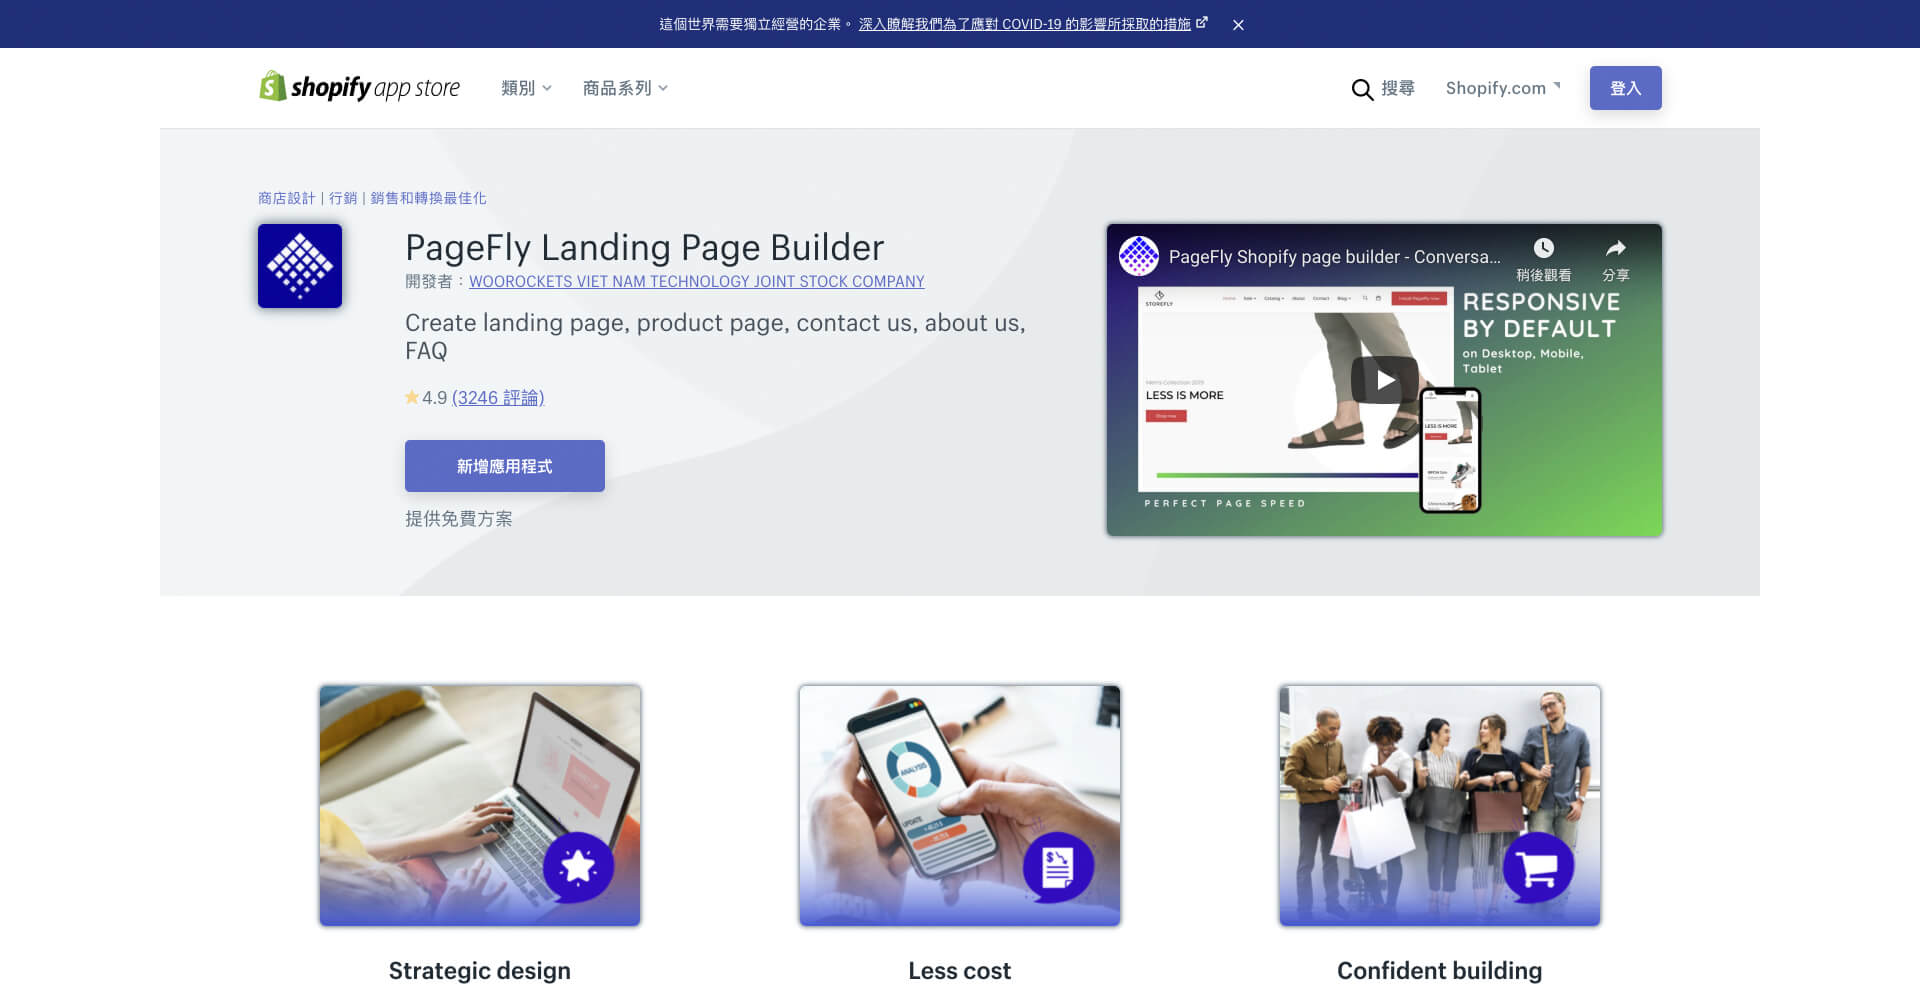 Shopify App Store — PageFly Landing Page Builder-IrvingLab 爾文實驗室